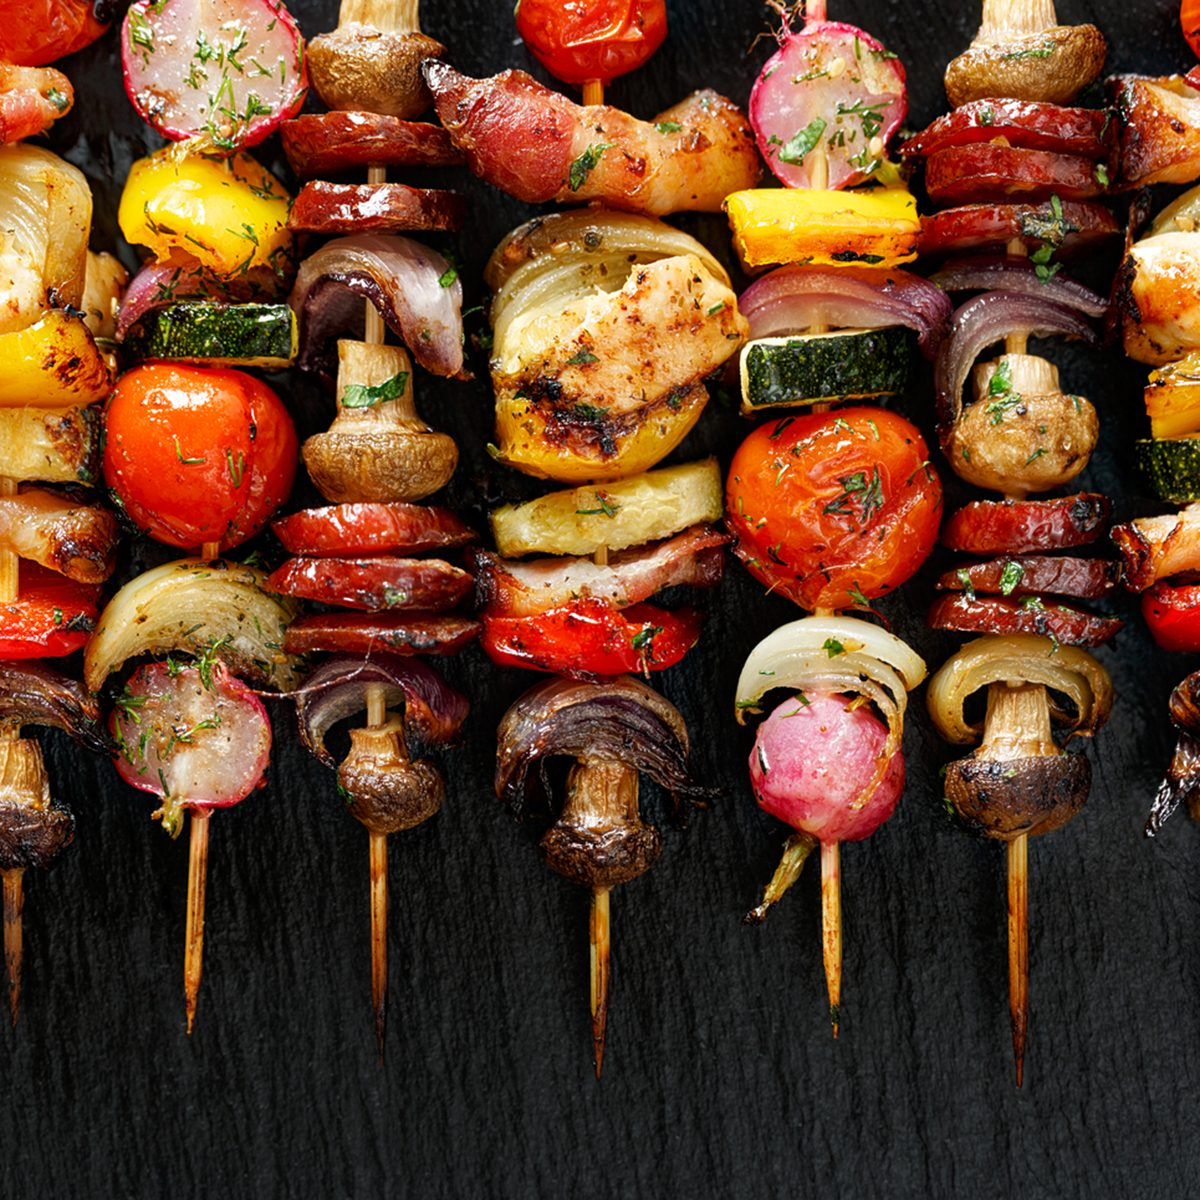 Grilled vegetable and meat skewers on the black stone background